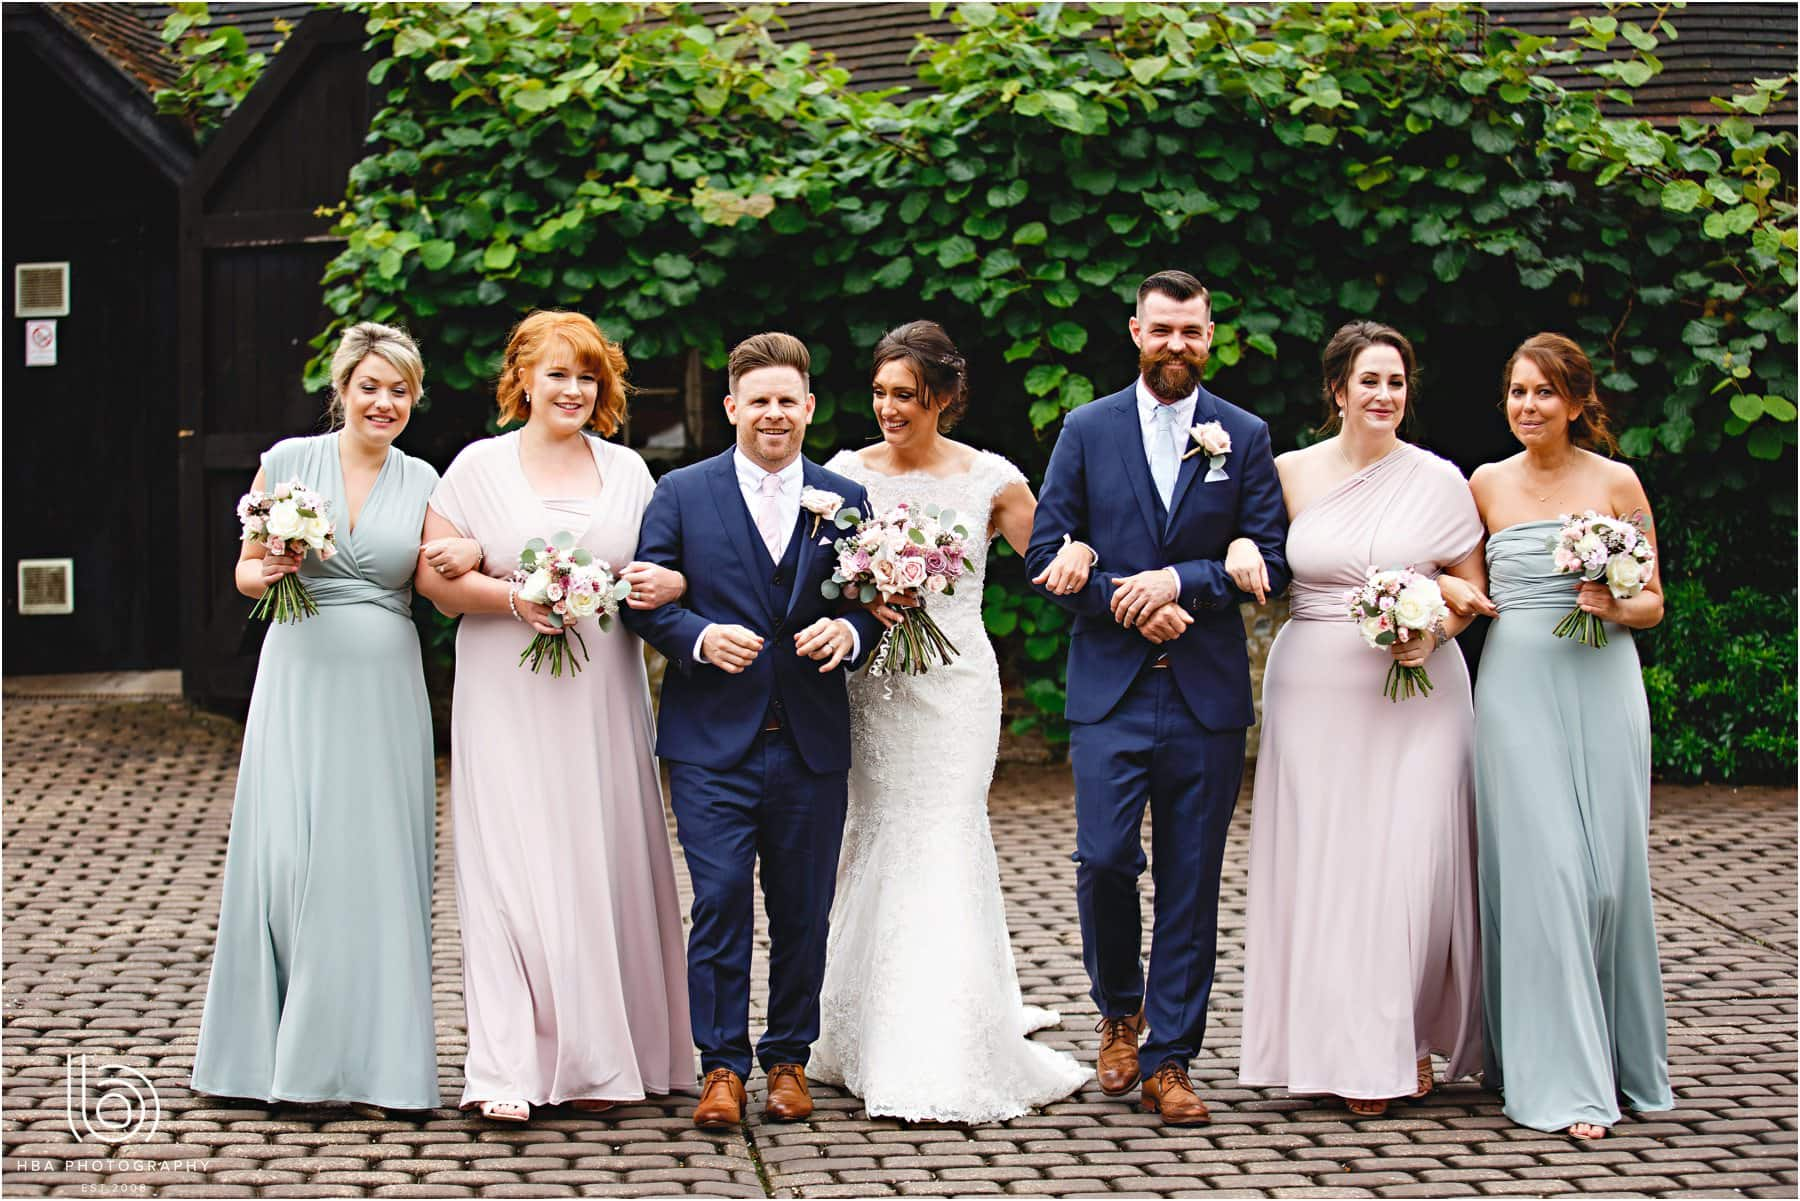 the bride and groom with the bridal party